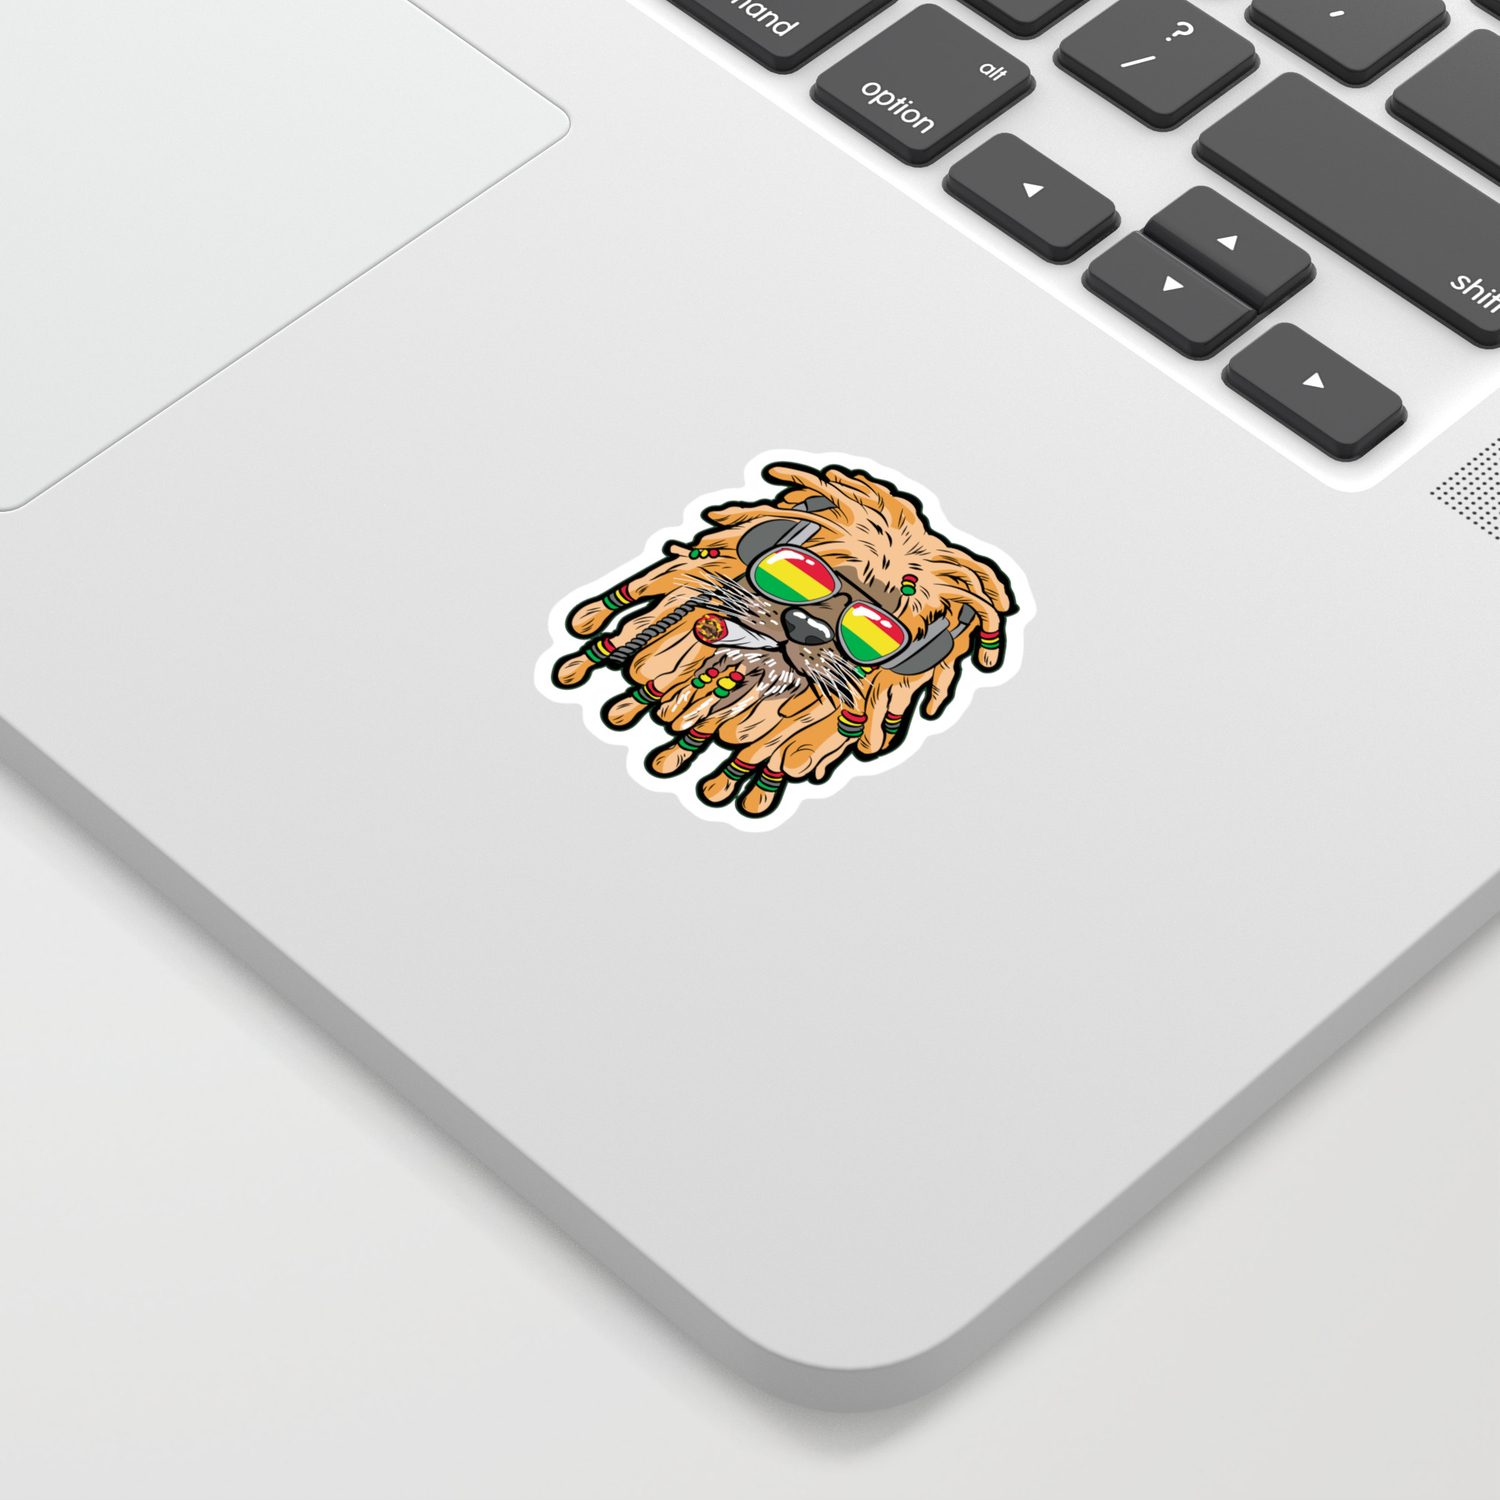 Rasta Lion Joint Smoking Weed 420 Ganja Pot Hash Sticker By Moonpie90 Society6